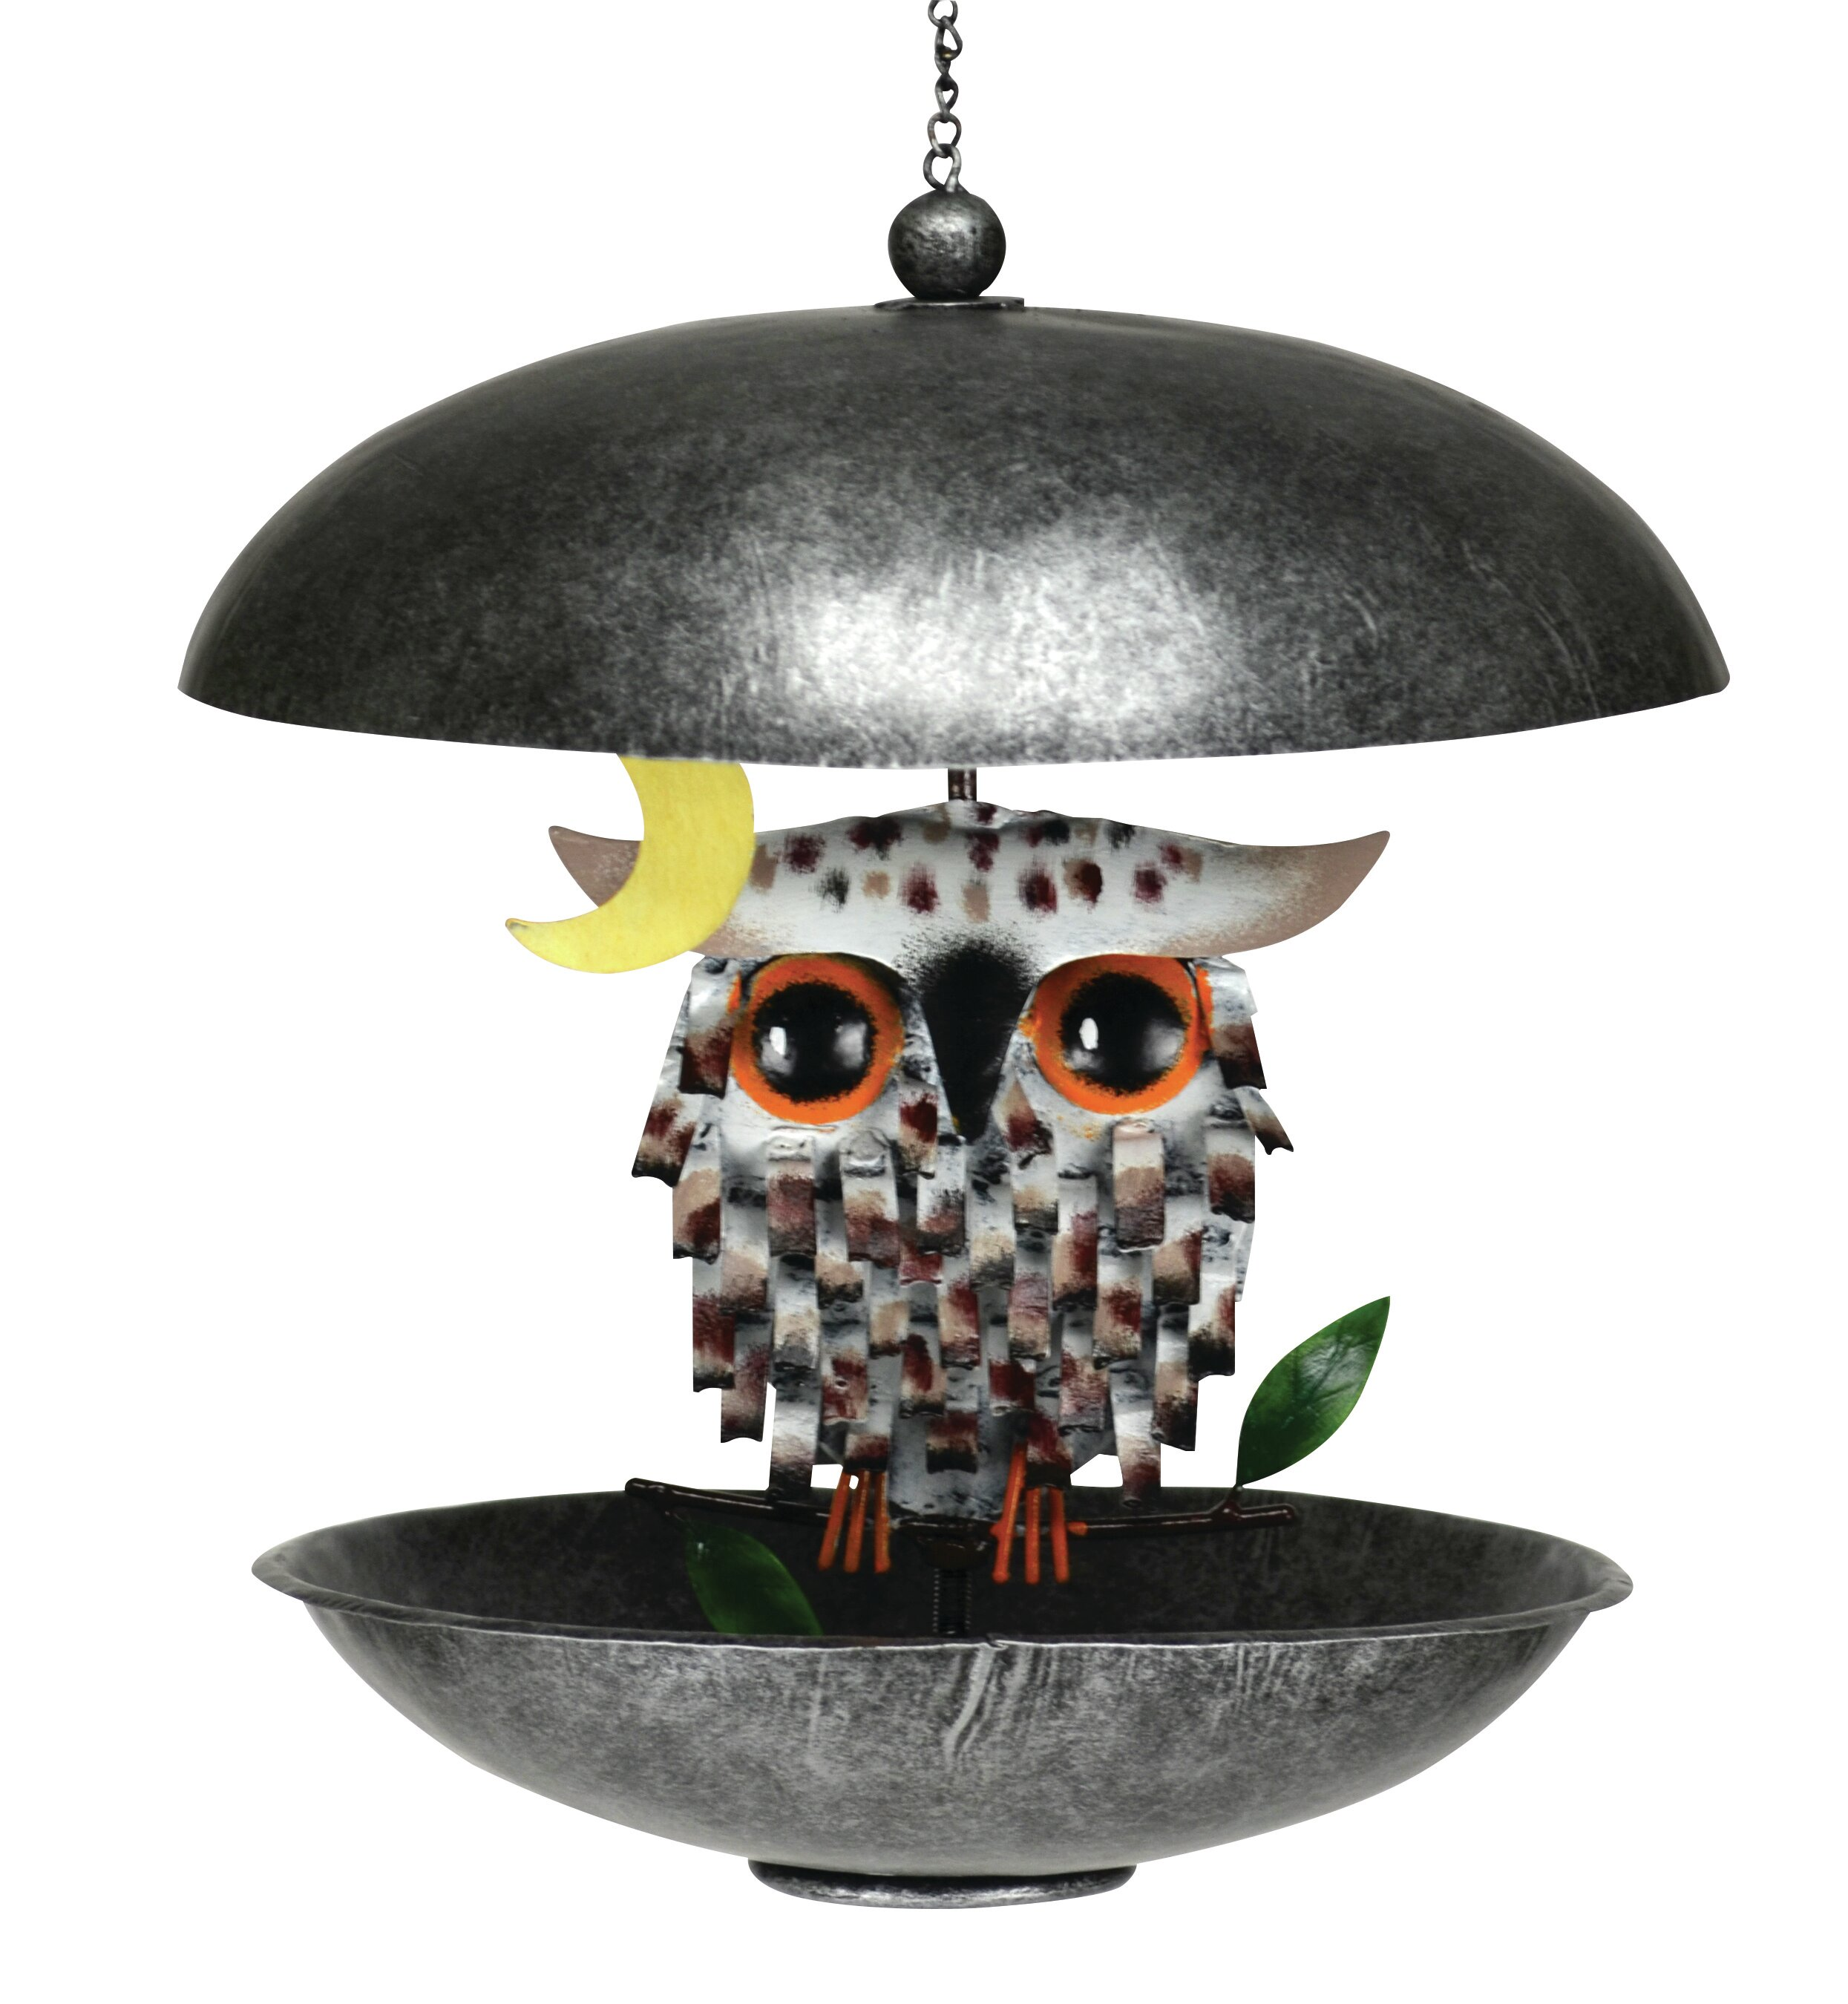 Gift Essentials Snowy Spikey Owl Bistro Decorative Bird Feeder Wayfair